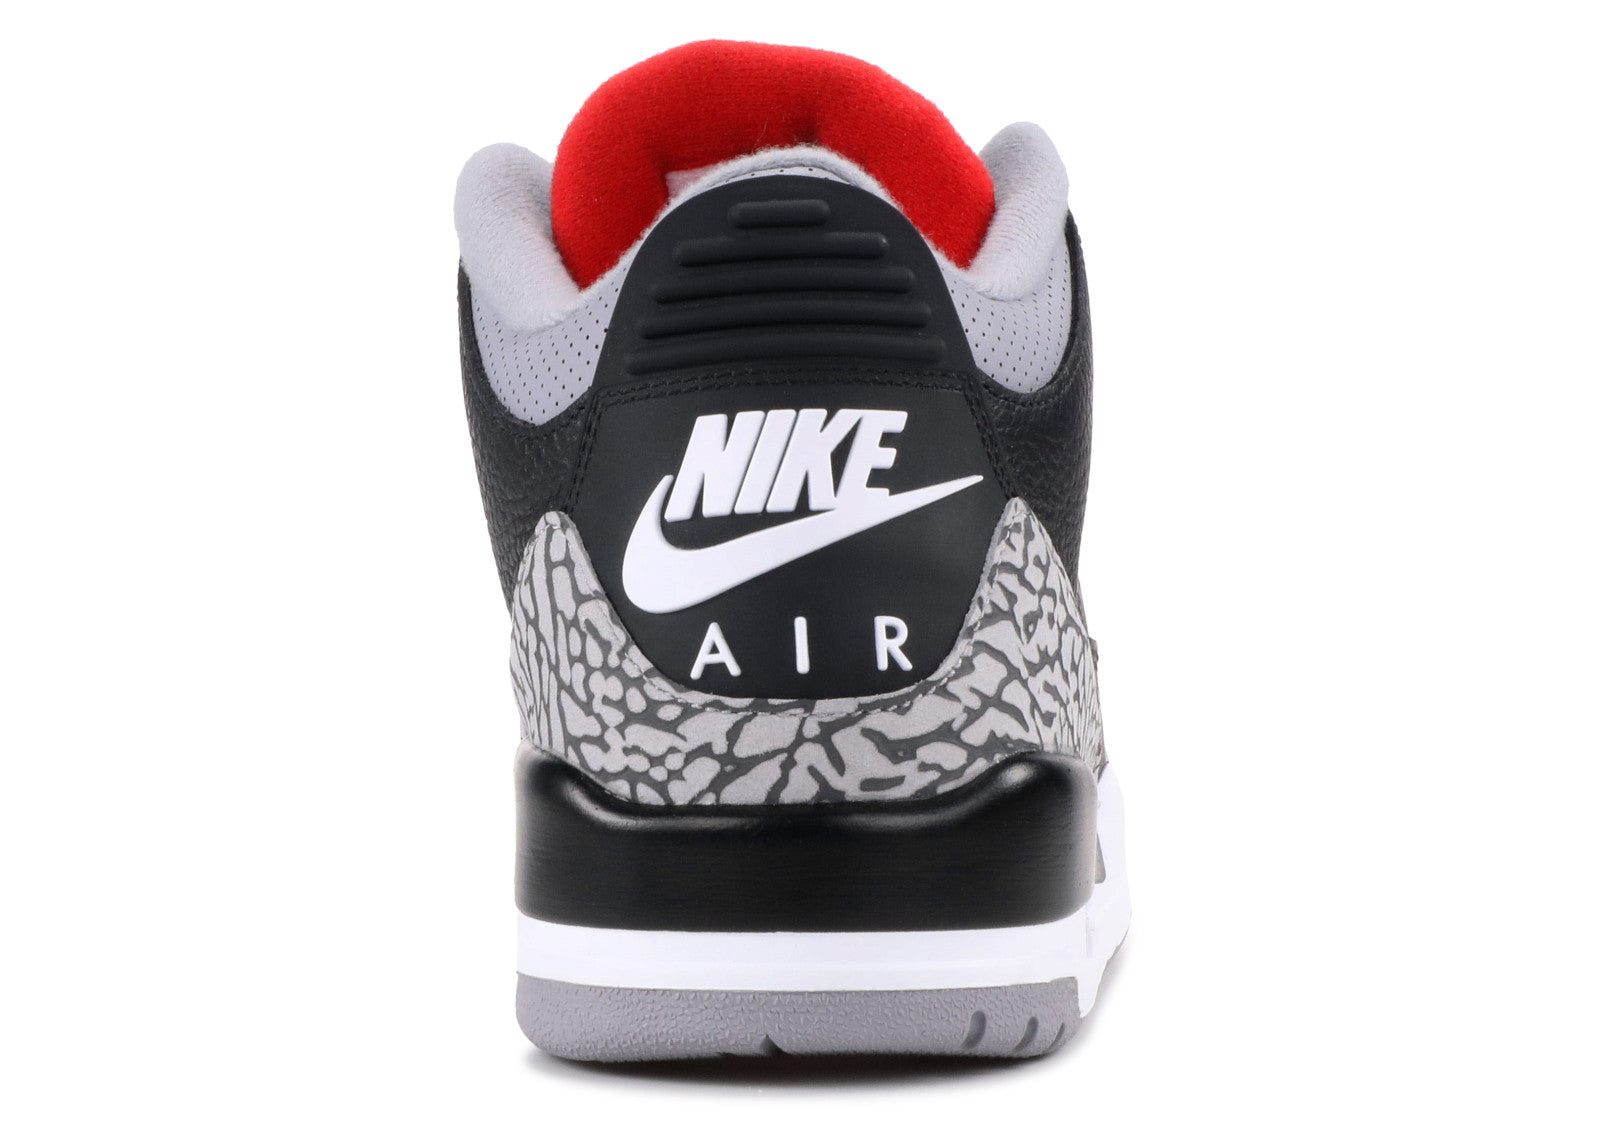 Nike Air Jordan 3 Retro OG 'Black Cement'